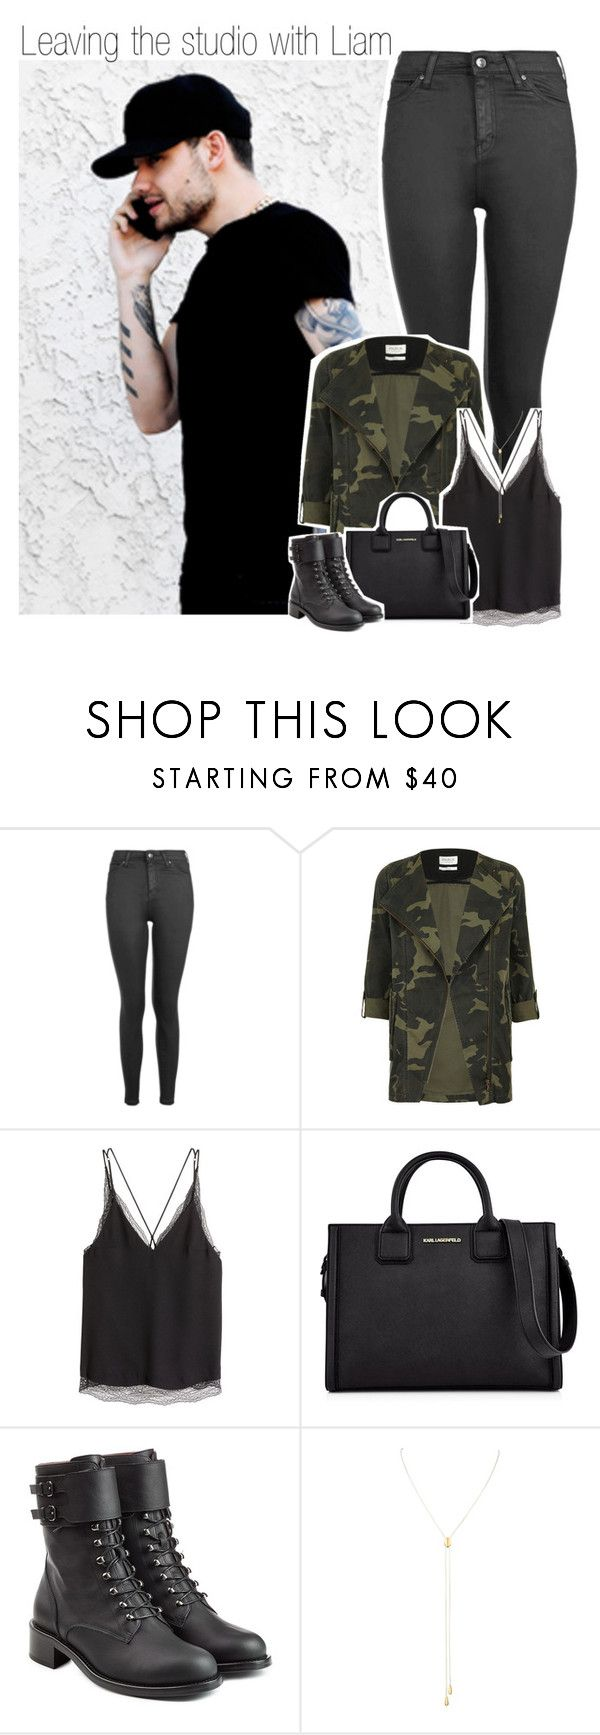 """""""Leaving the studio with Liam"""" by liamismybabe ❤ liked on Polyvore featuring Payne, Topshop, Parka London, H&M, Karl Lagerfeld, Philosophy di Lorenzo Serafini, Susan Caplan Vintage, OneDirection and LiamPayne"""